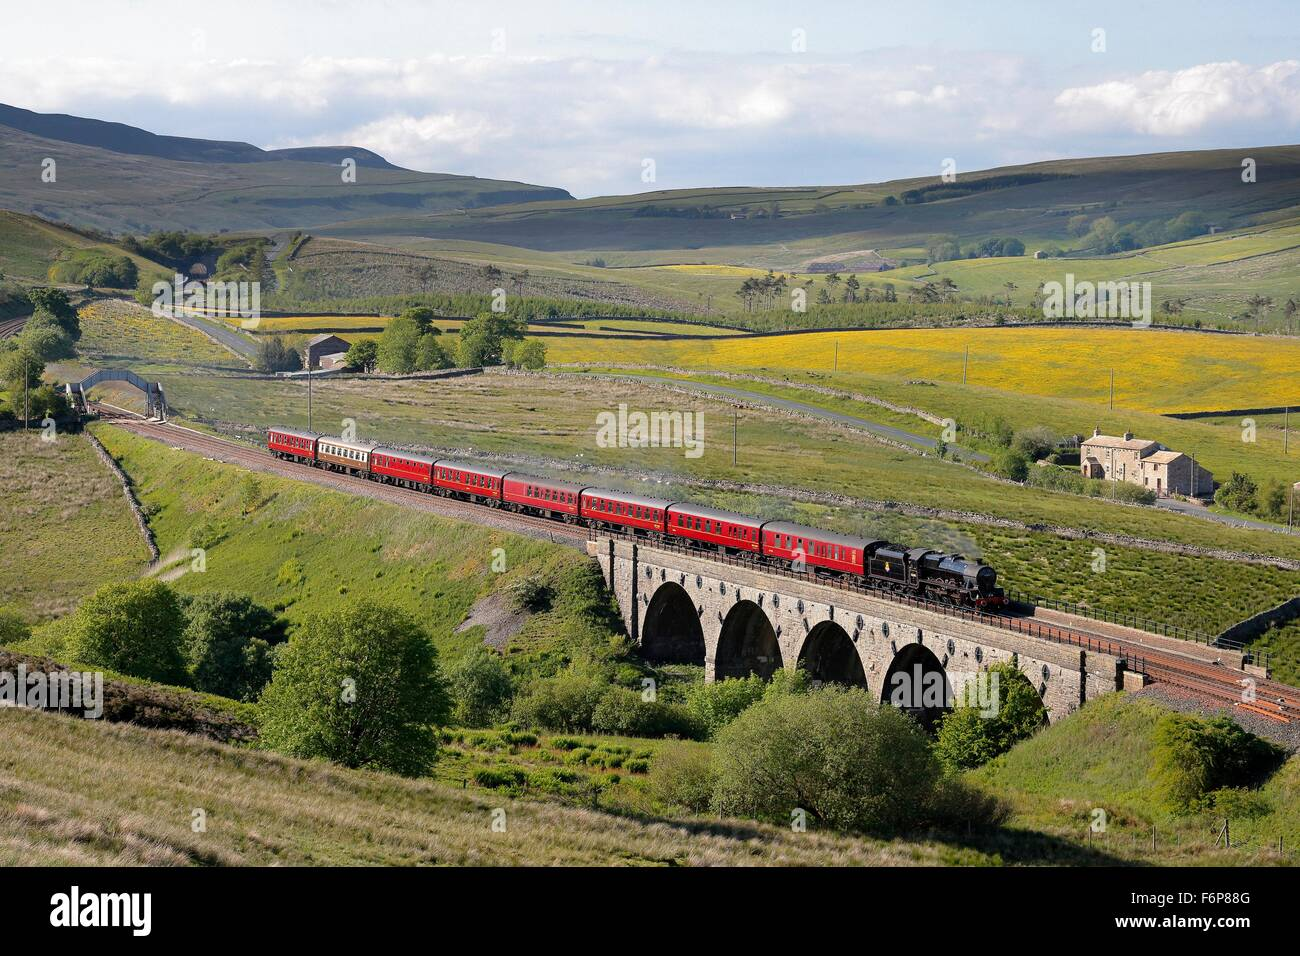 Lunds Viaduct, Settle to Carlisle Railway. Steam locomotive LMS Jubilee Class Leander 45690. Crossing Lunds Viaduct. - Stock Image